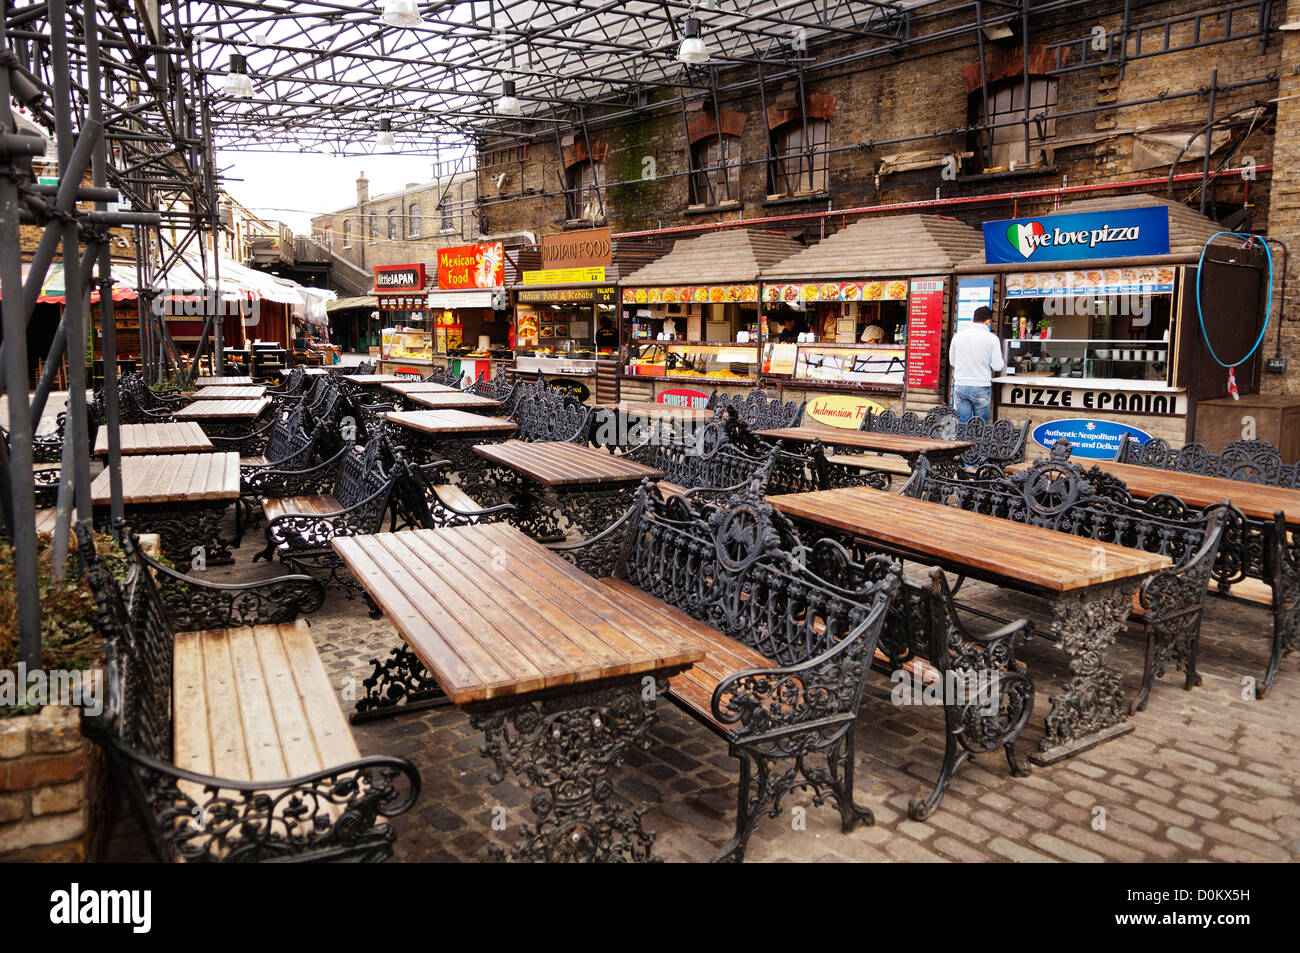 The food court in The Stables Market in Camden. - Stock Image